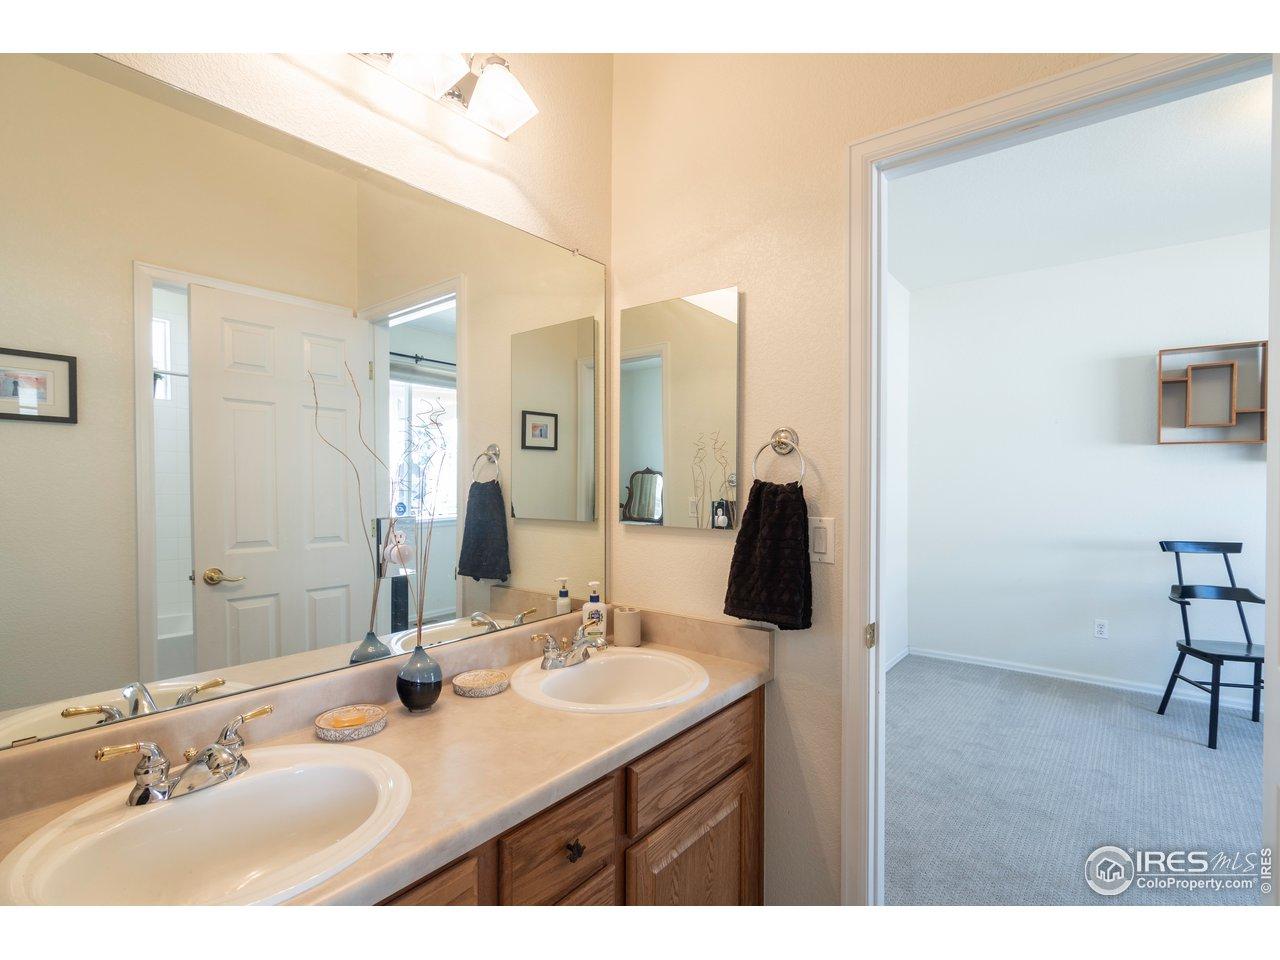 double sinks in jack and jill bath between 2nd and 3rd bedrooms